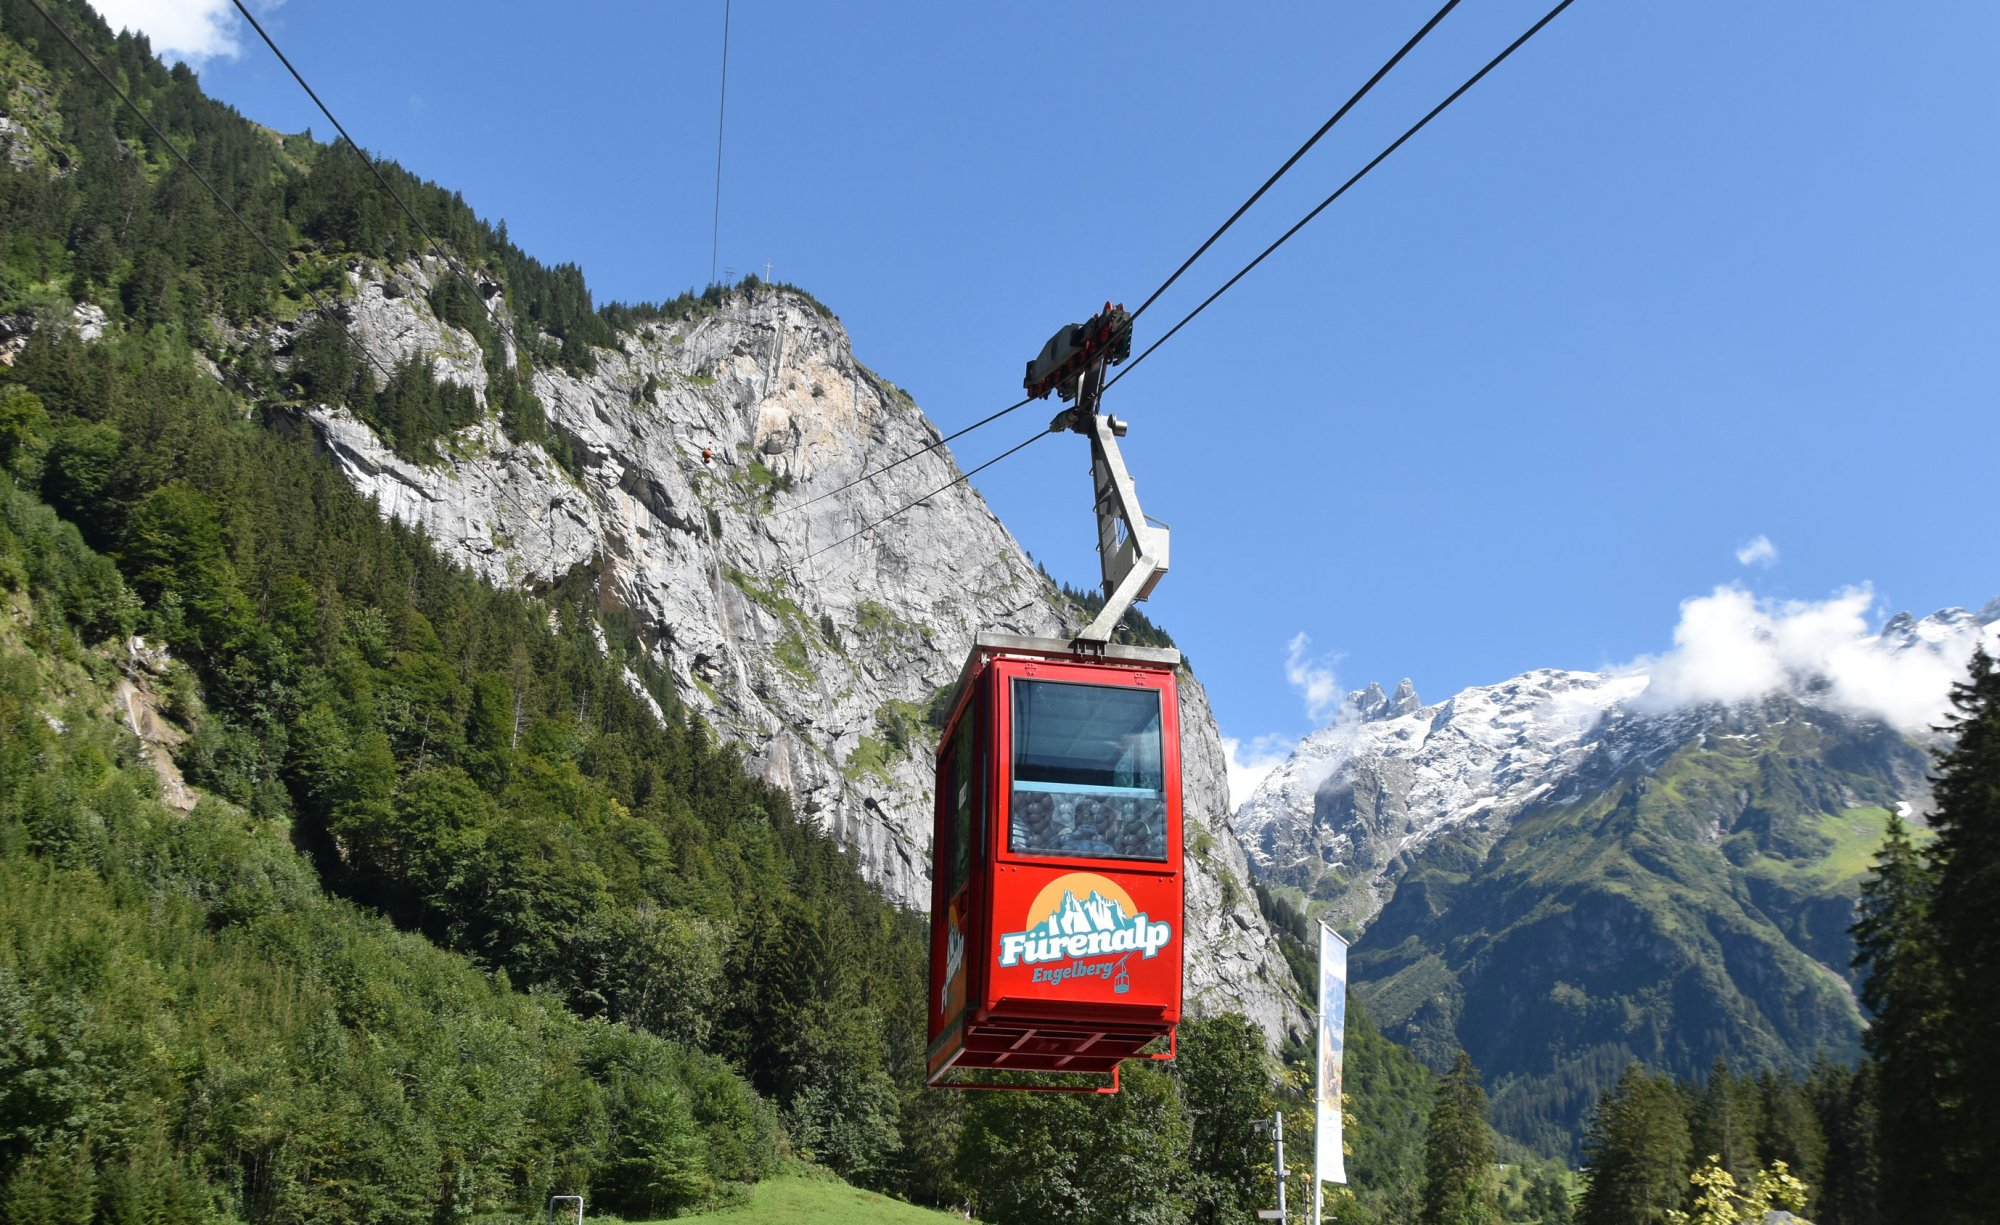 All passengers must wear a hygienic mask when travelling in the cable car Fürenalp.